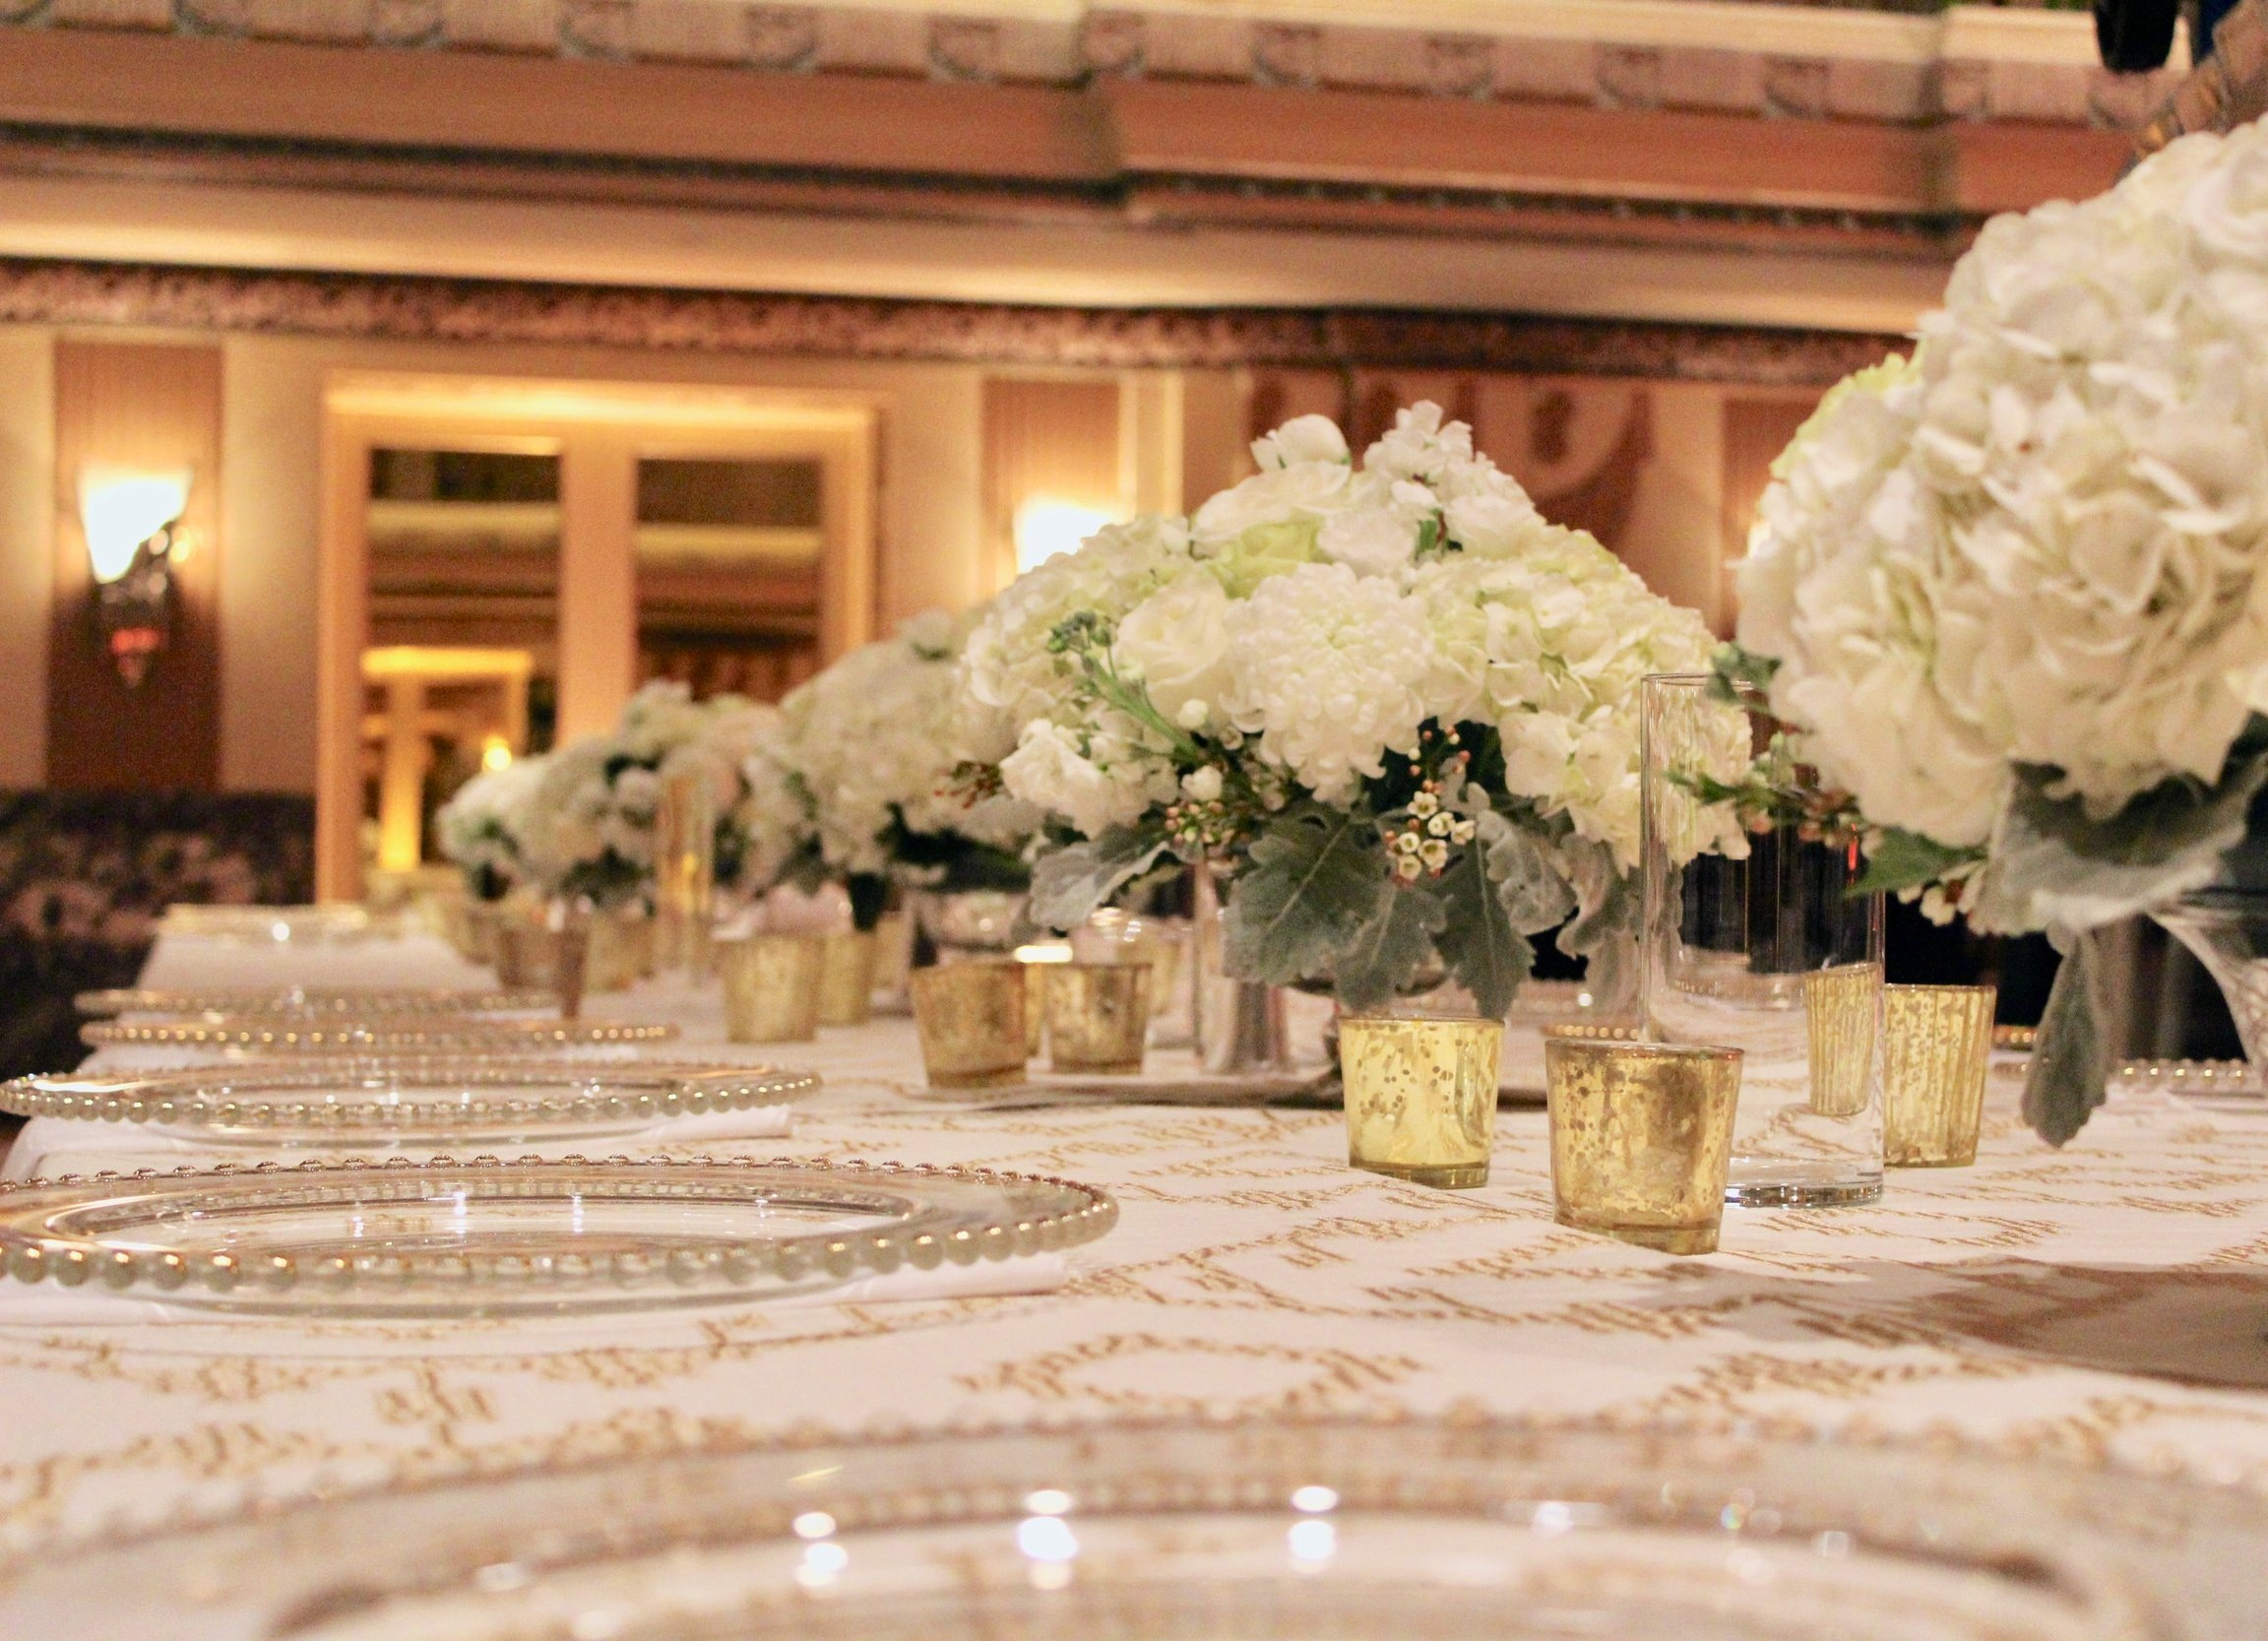 Meredith & Elliot's guests enjoyed a gorgeous reception in a room full of tall, focal arrangements full of white flowers and an assortment of greenery including eucalyptus and silvery lamb's ear.